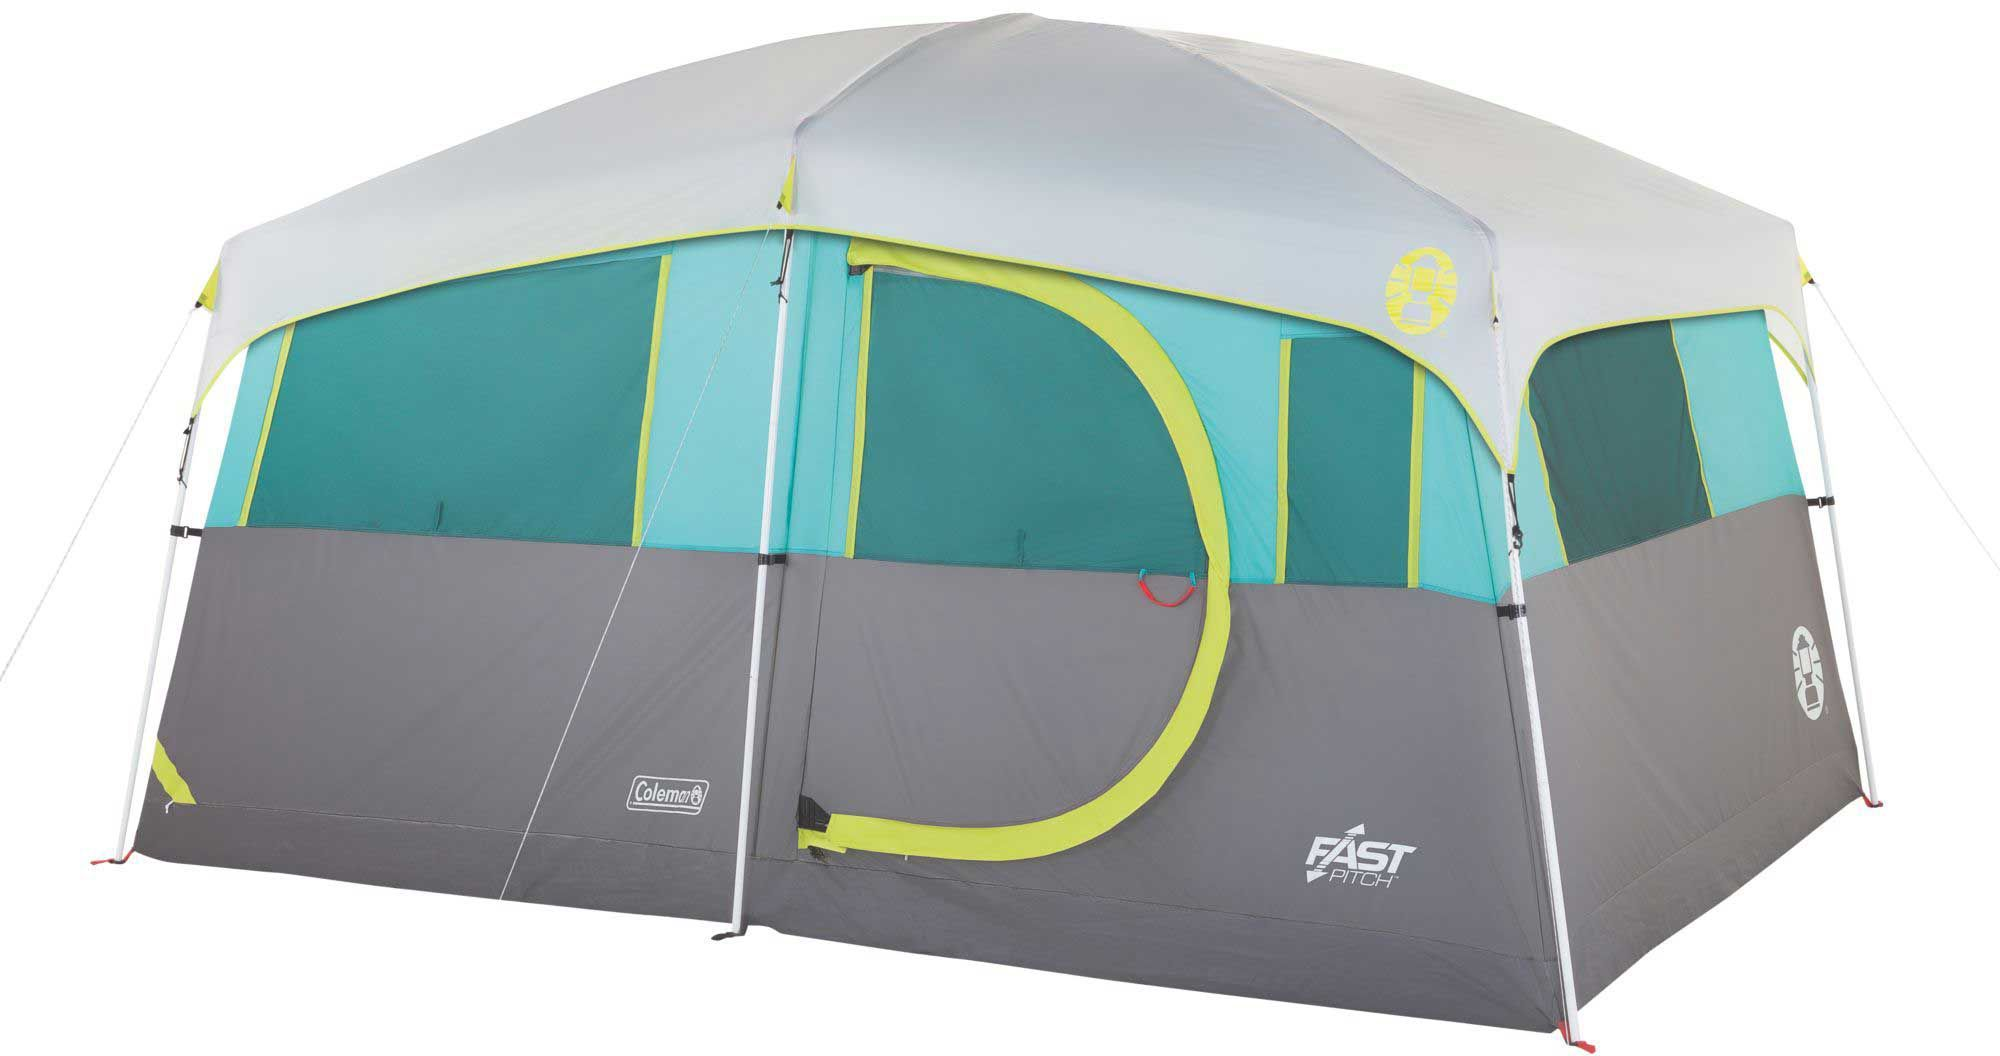 Attaches To The Teardrop Dome To Create Privacy And Protection From The Elements Attaches Via Elastic Toggle Teardrop Camping Teardrop Caravan Camping Trailer